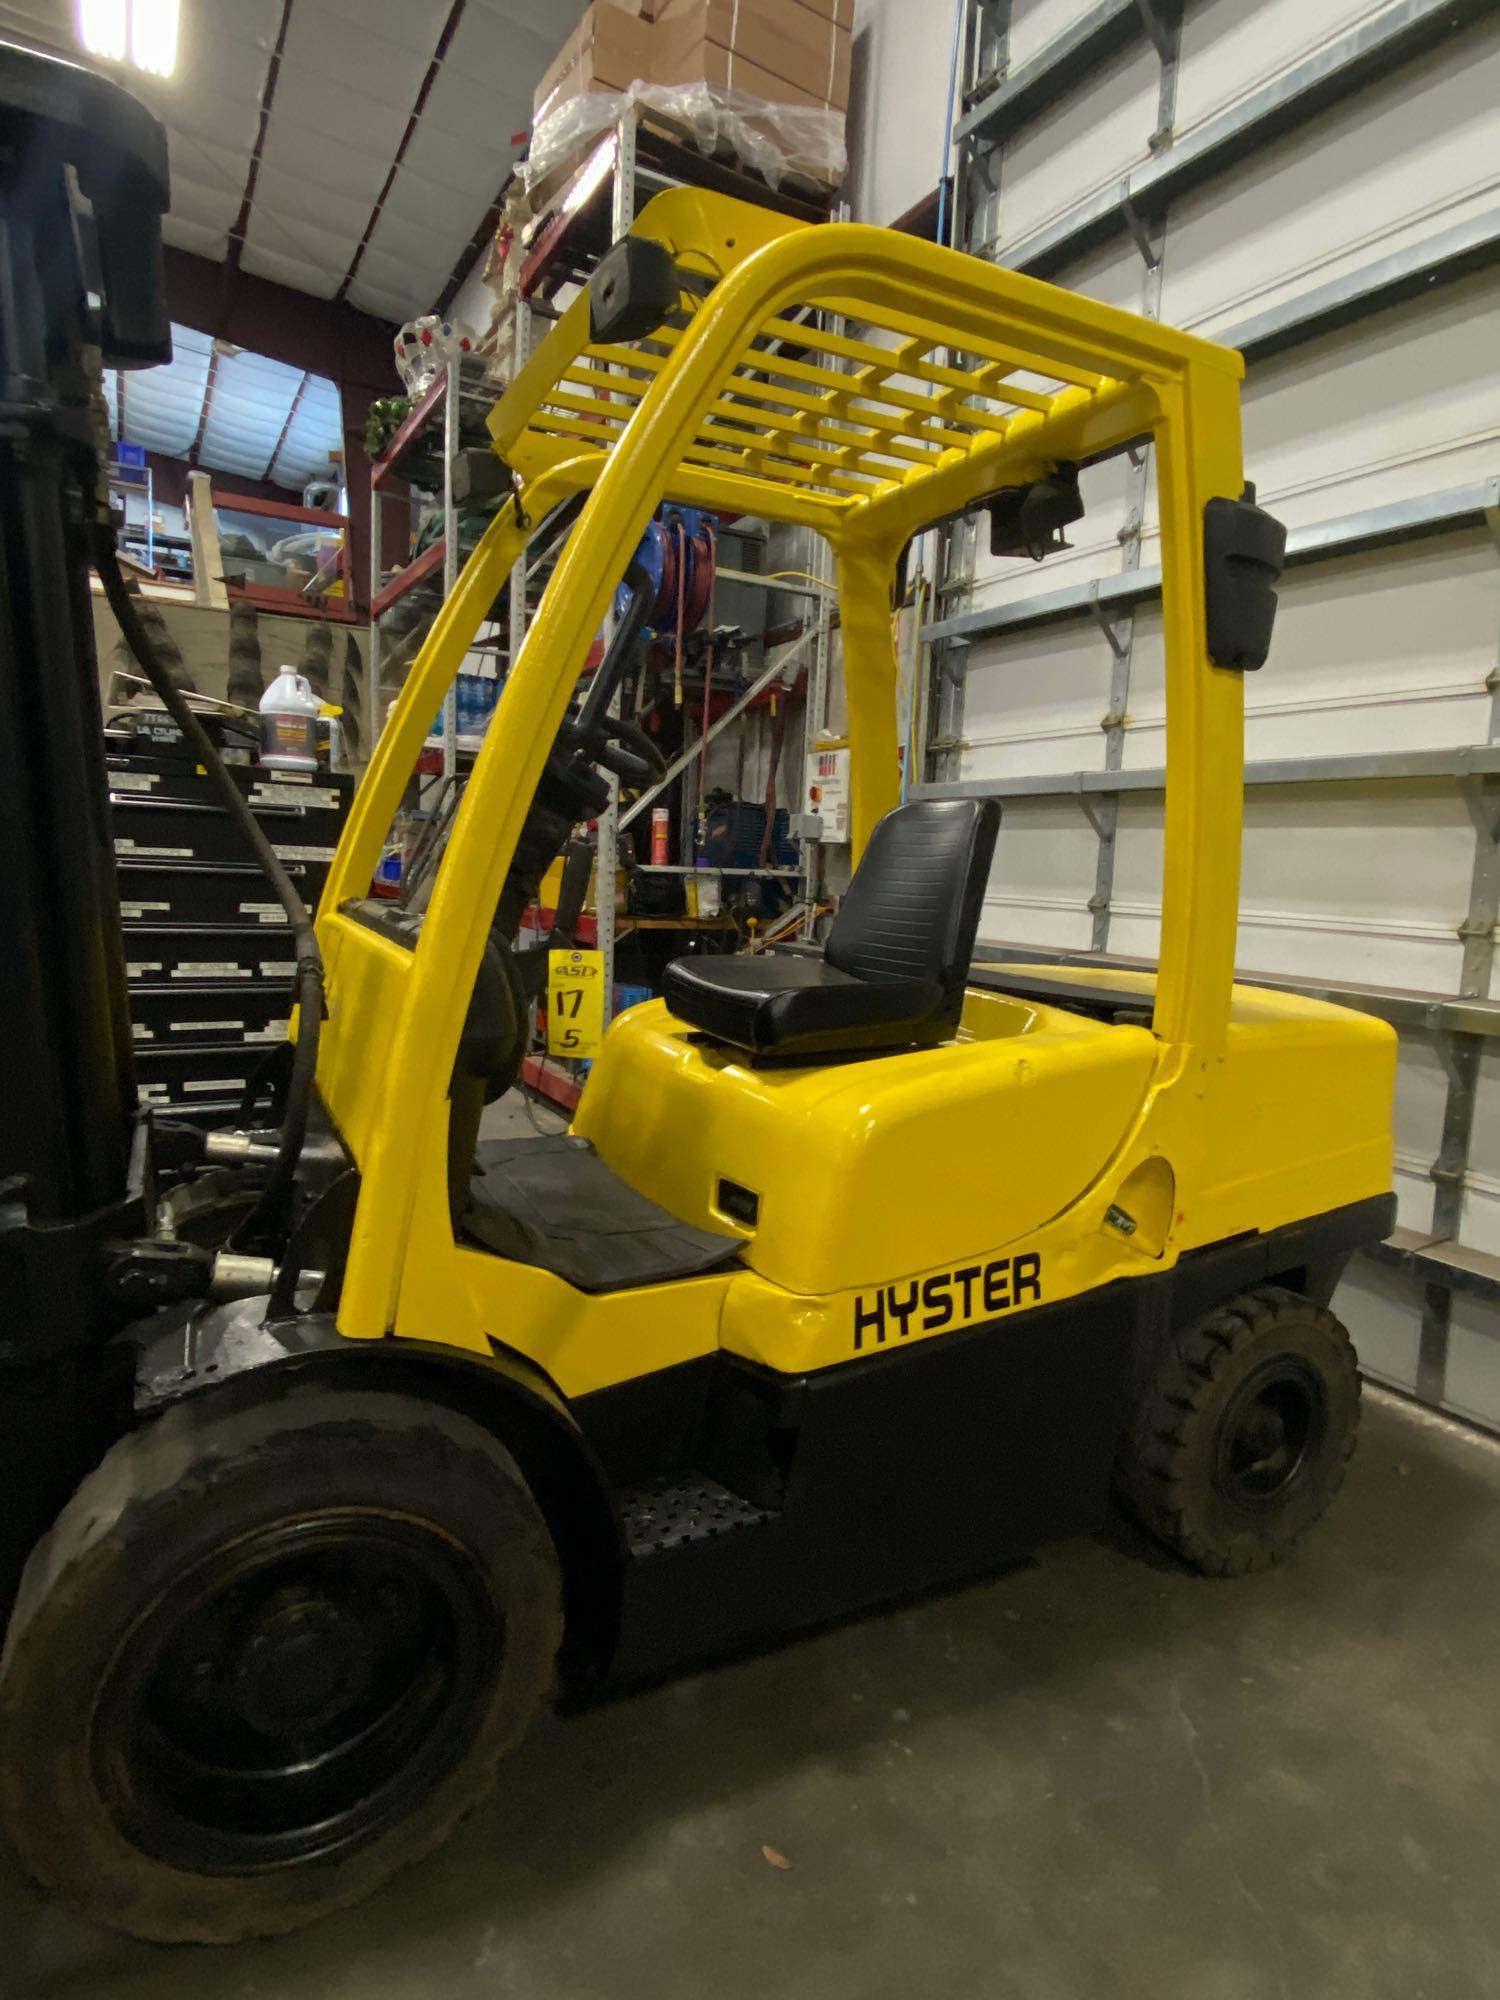 """HYSTER H70FT FORKLIFT, APPROX. 7,000 LB CAPACITY, 181.9"""" HEIGHT CAP, TILT, RUNS AND OPERATES - Image 8 of 10"""